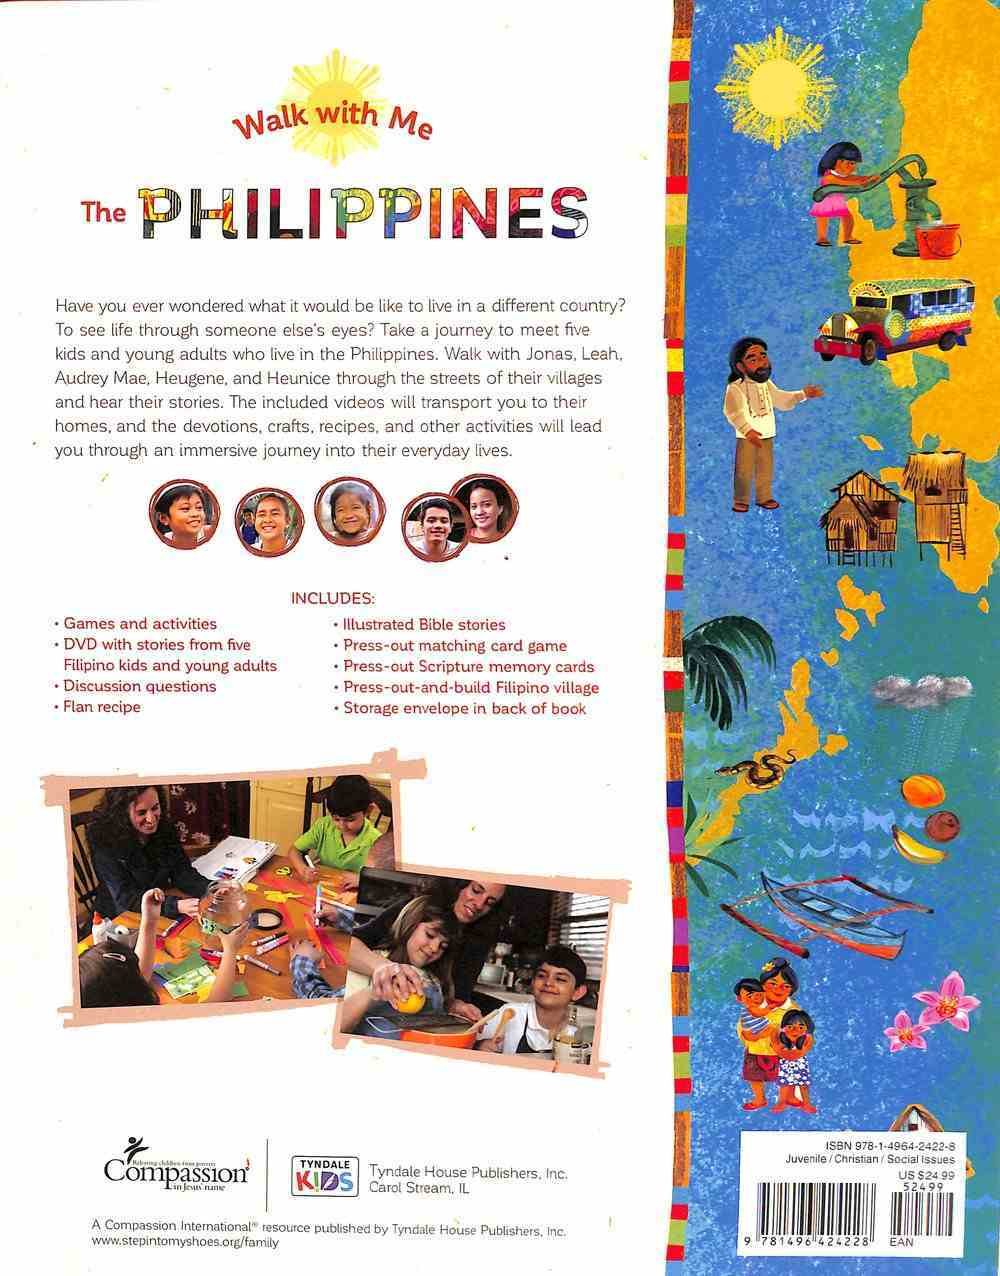 Philippines, The: An Interactive Experience (Includes DVD and Card Game) (Walk With Me Series) Hardback